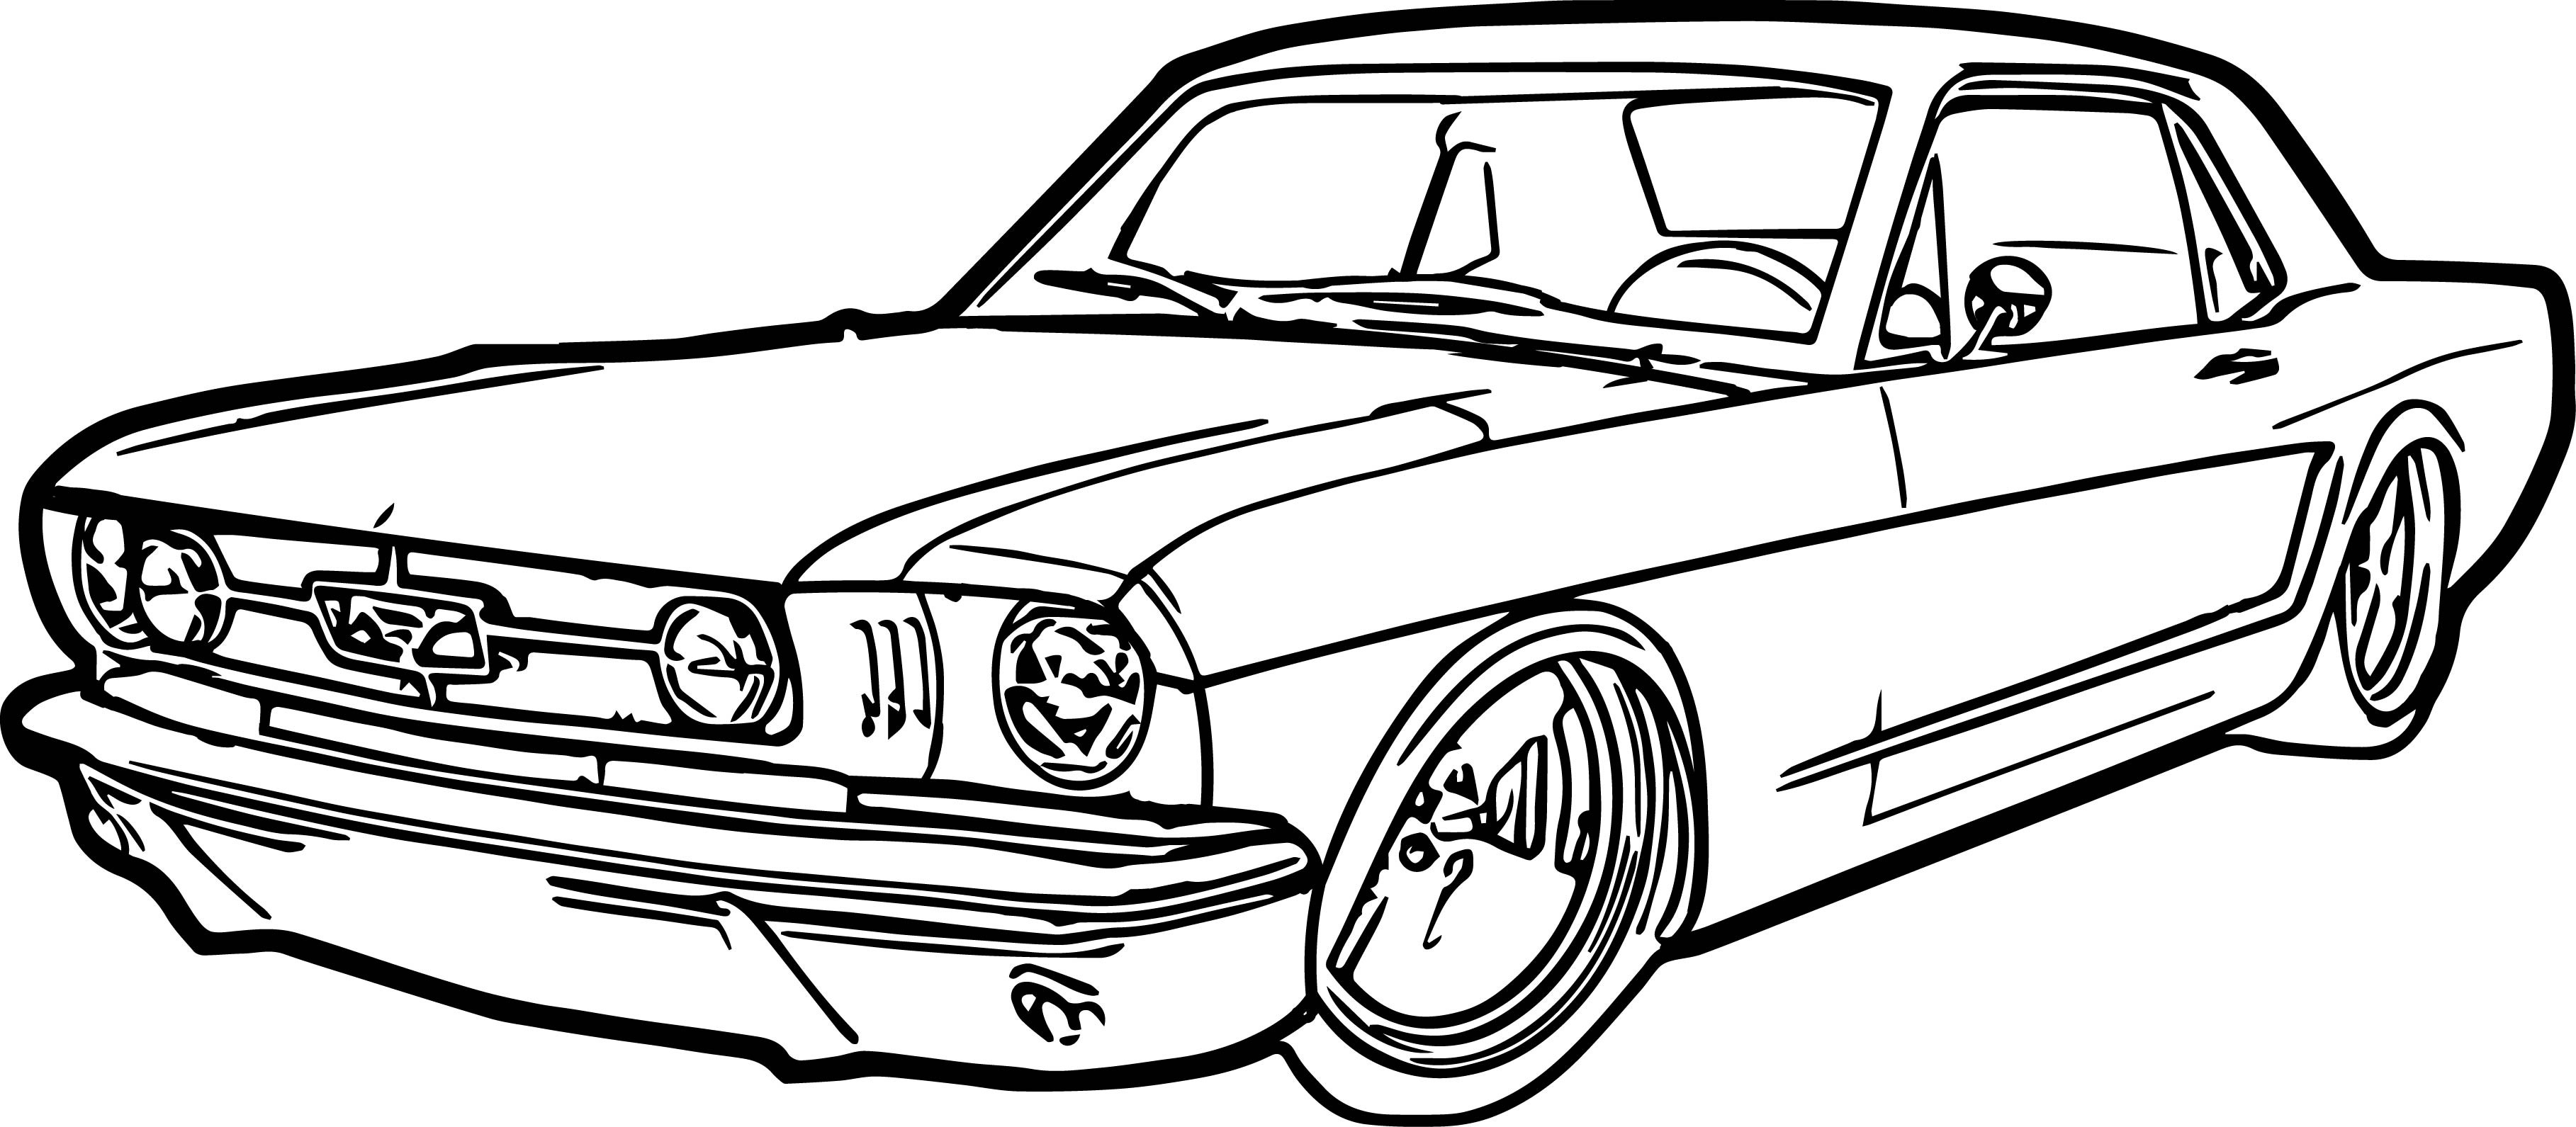 3635x1591 Mustang Coloring Pages Ford Free Draw To Color Ribsvigyapan